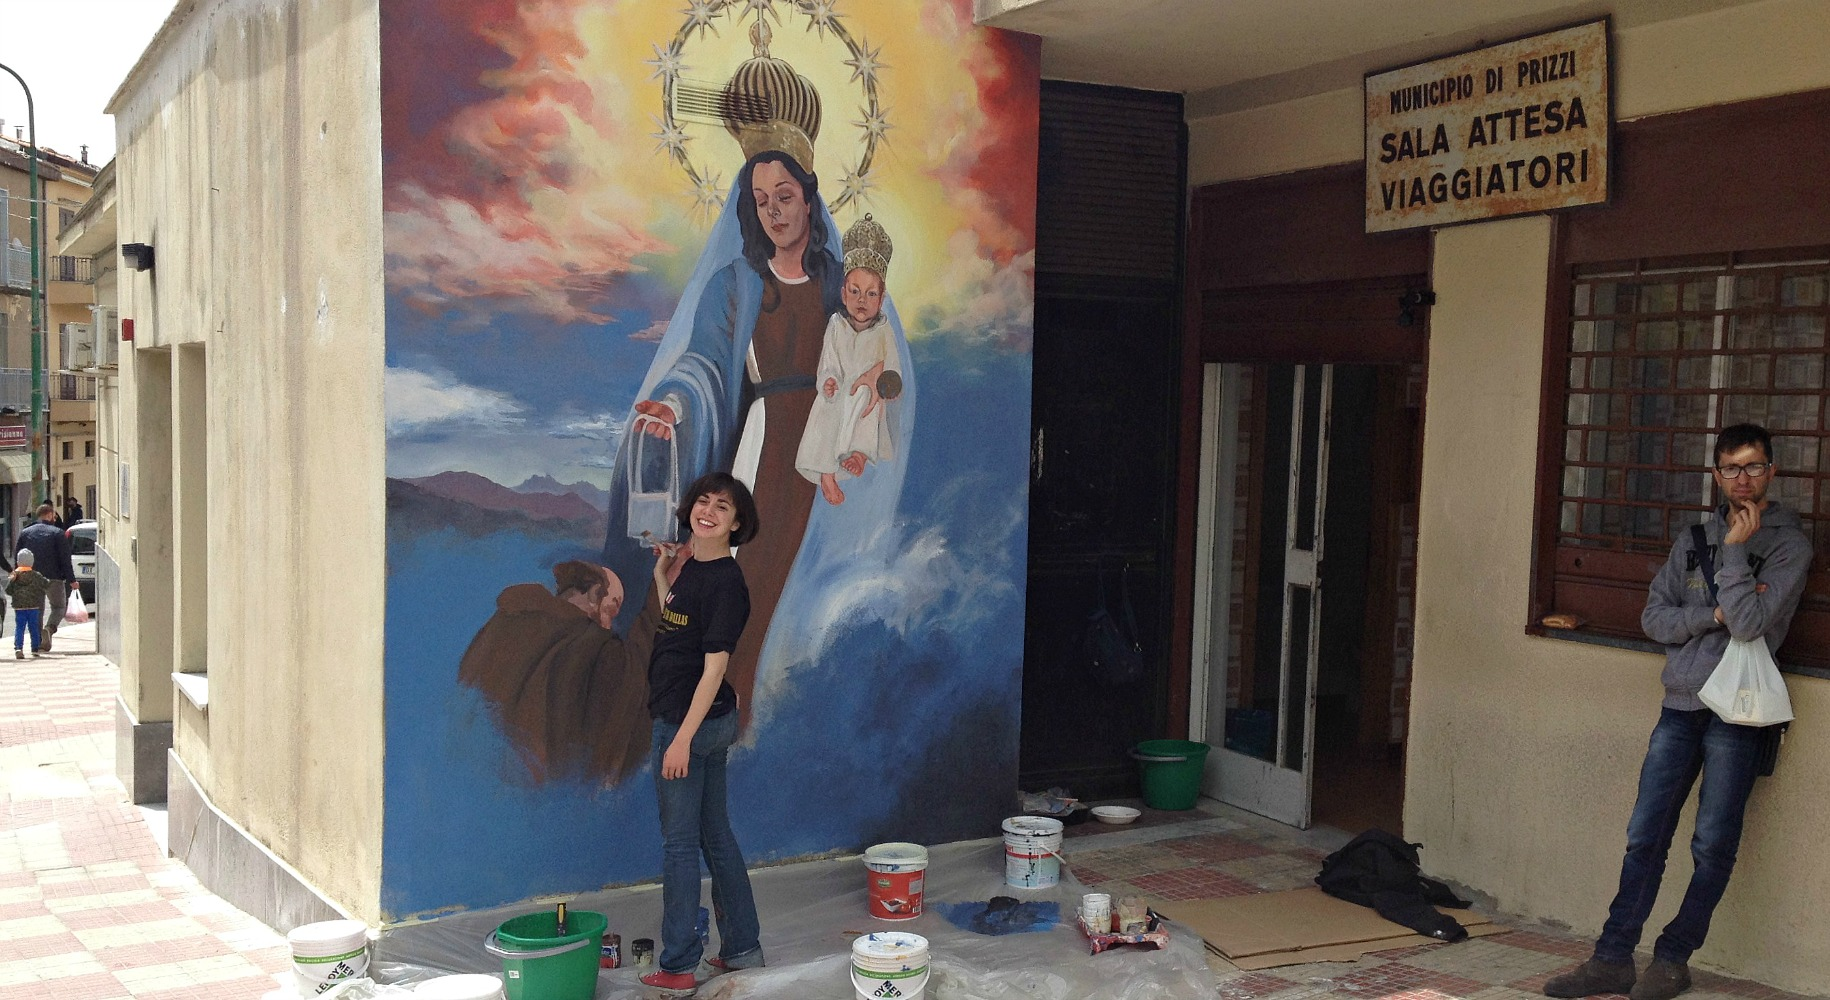 """Olivia Cole and her mural of Our Lady of Mount Carmel at the bus stop. The sign says: 'Municipal of Prizzi. Travelers Waiting Room."""""""